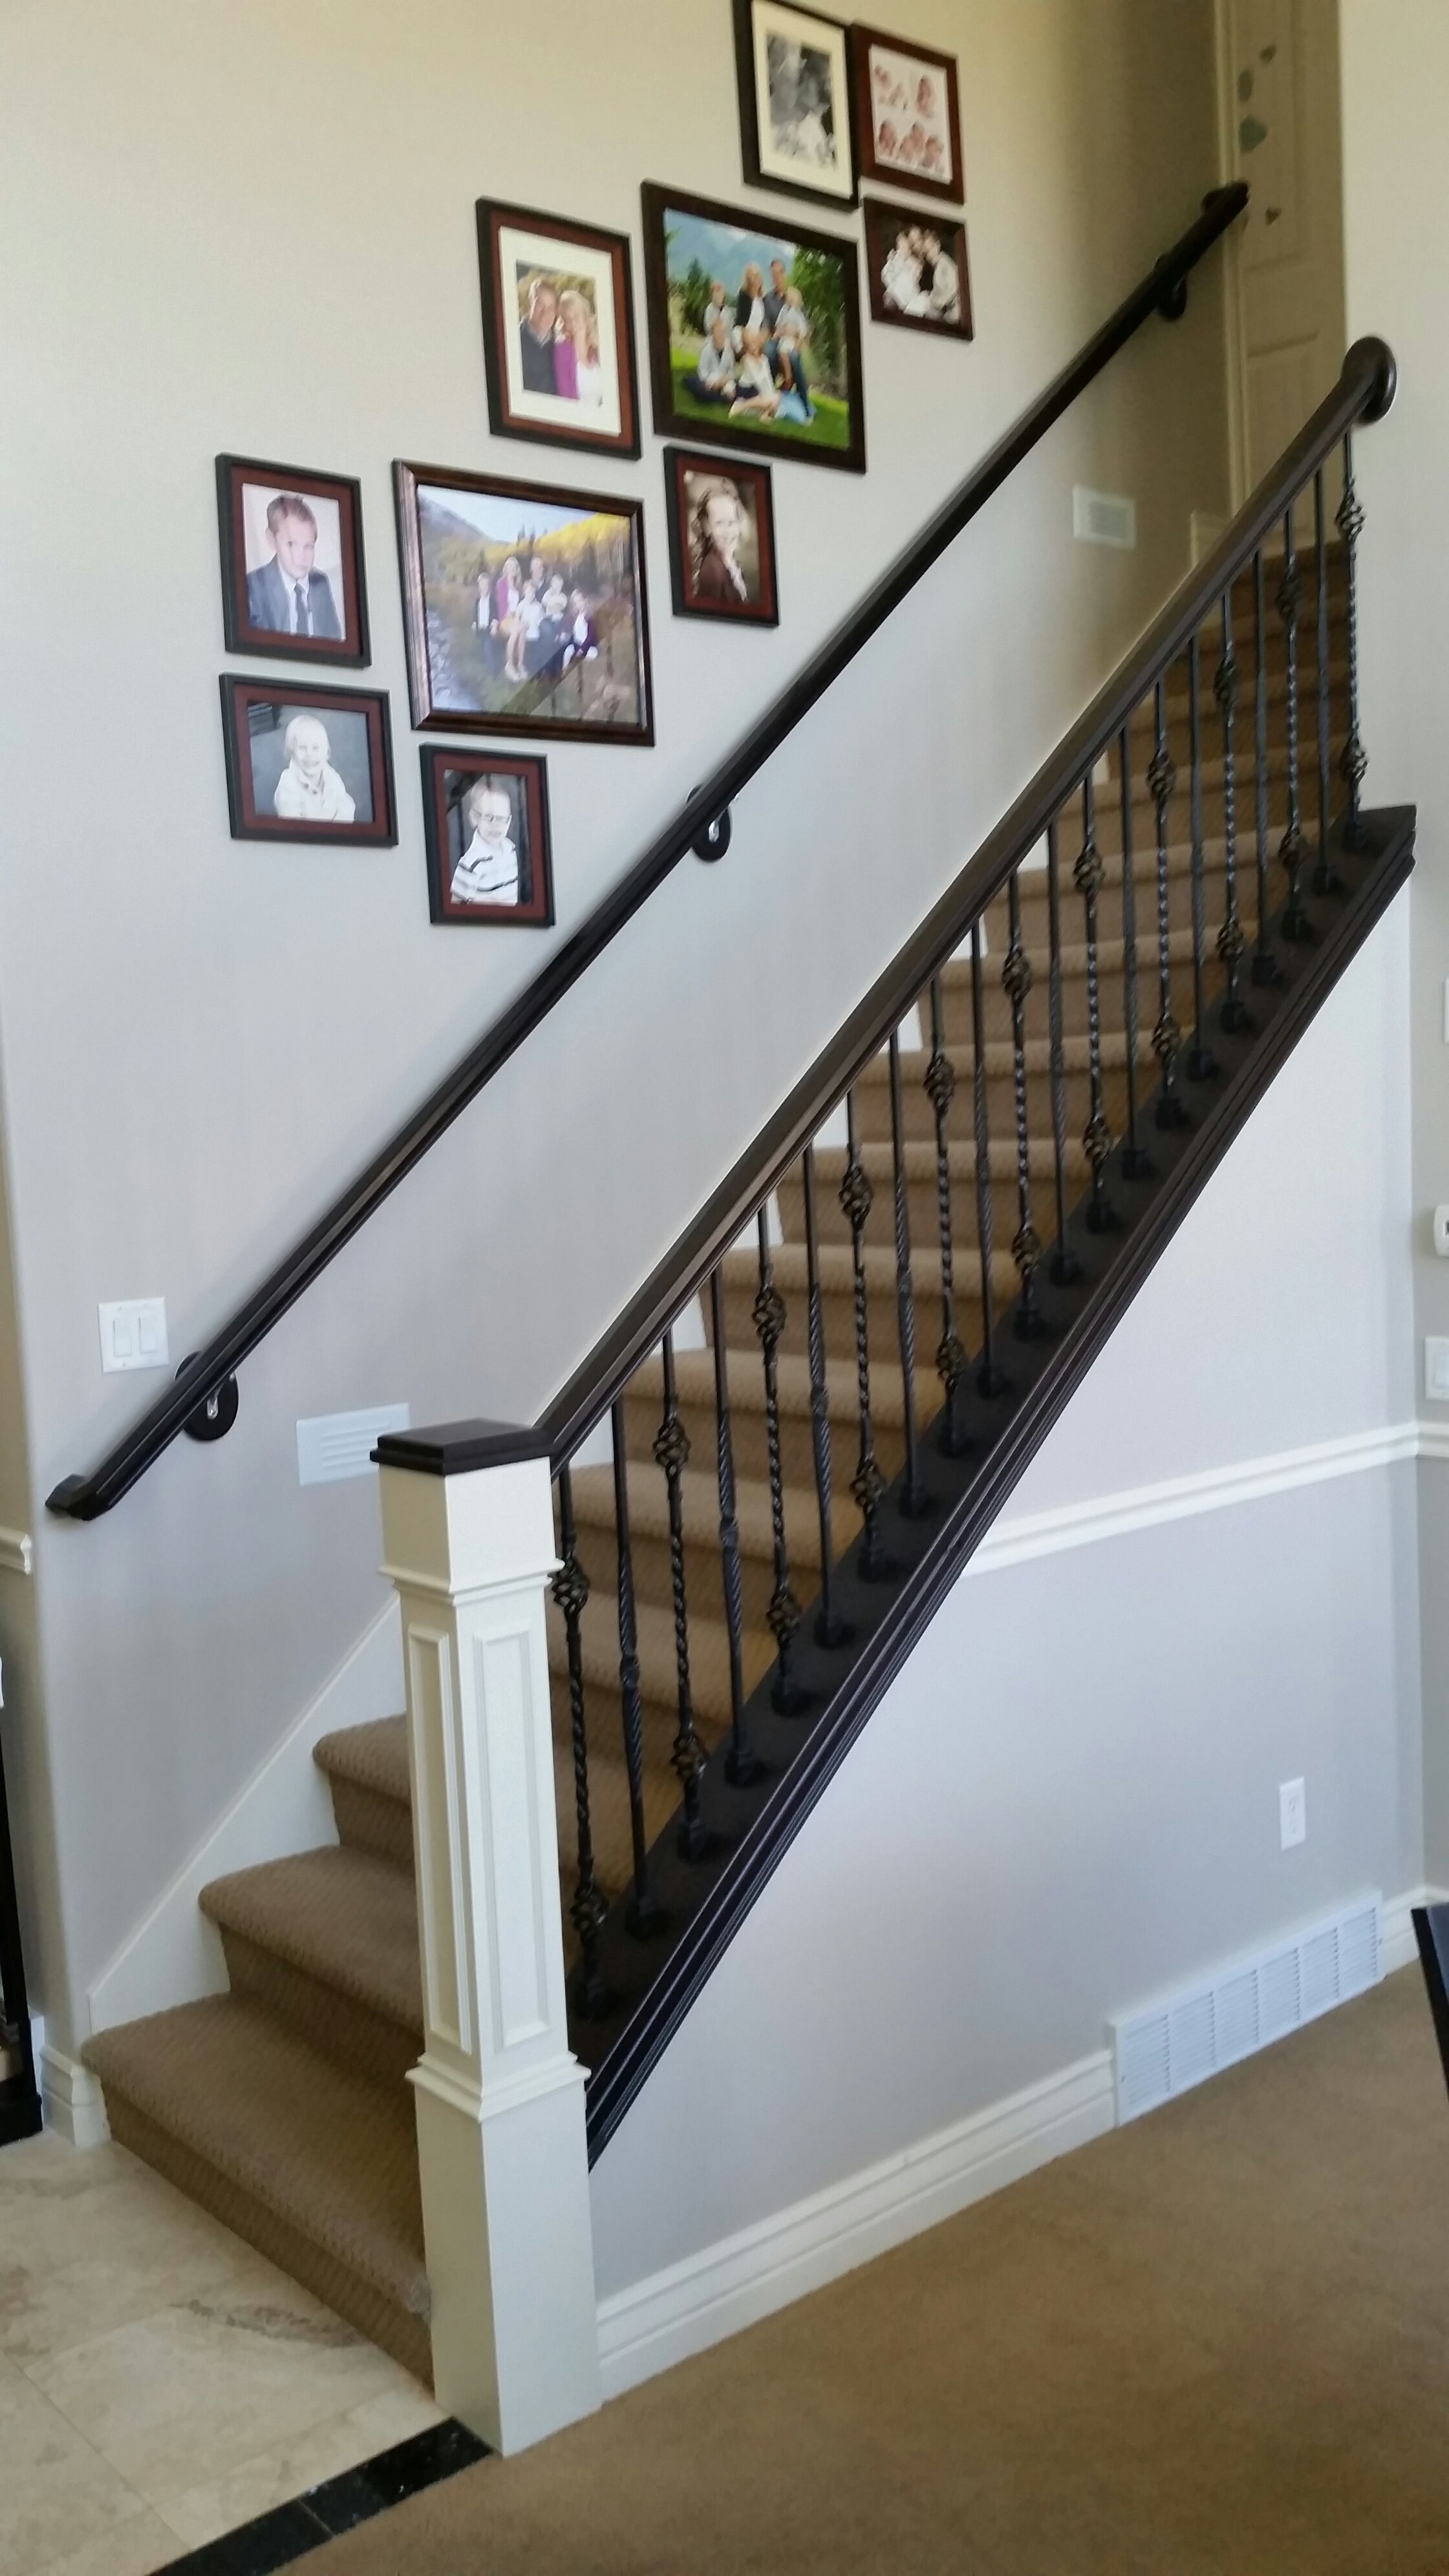 Refinished Staircase Railings By Chameleon Painting SLC, UT. Custom Gel  Stain Match With Impressive